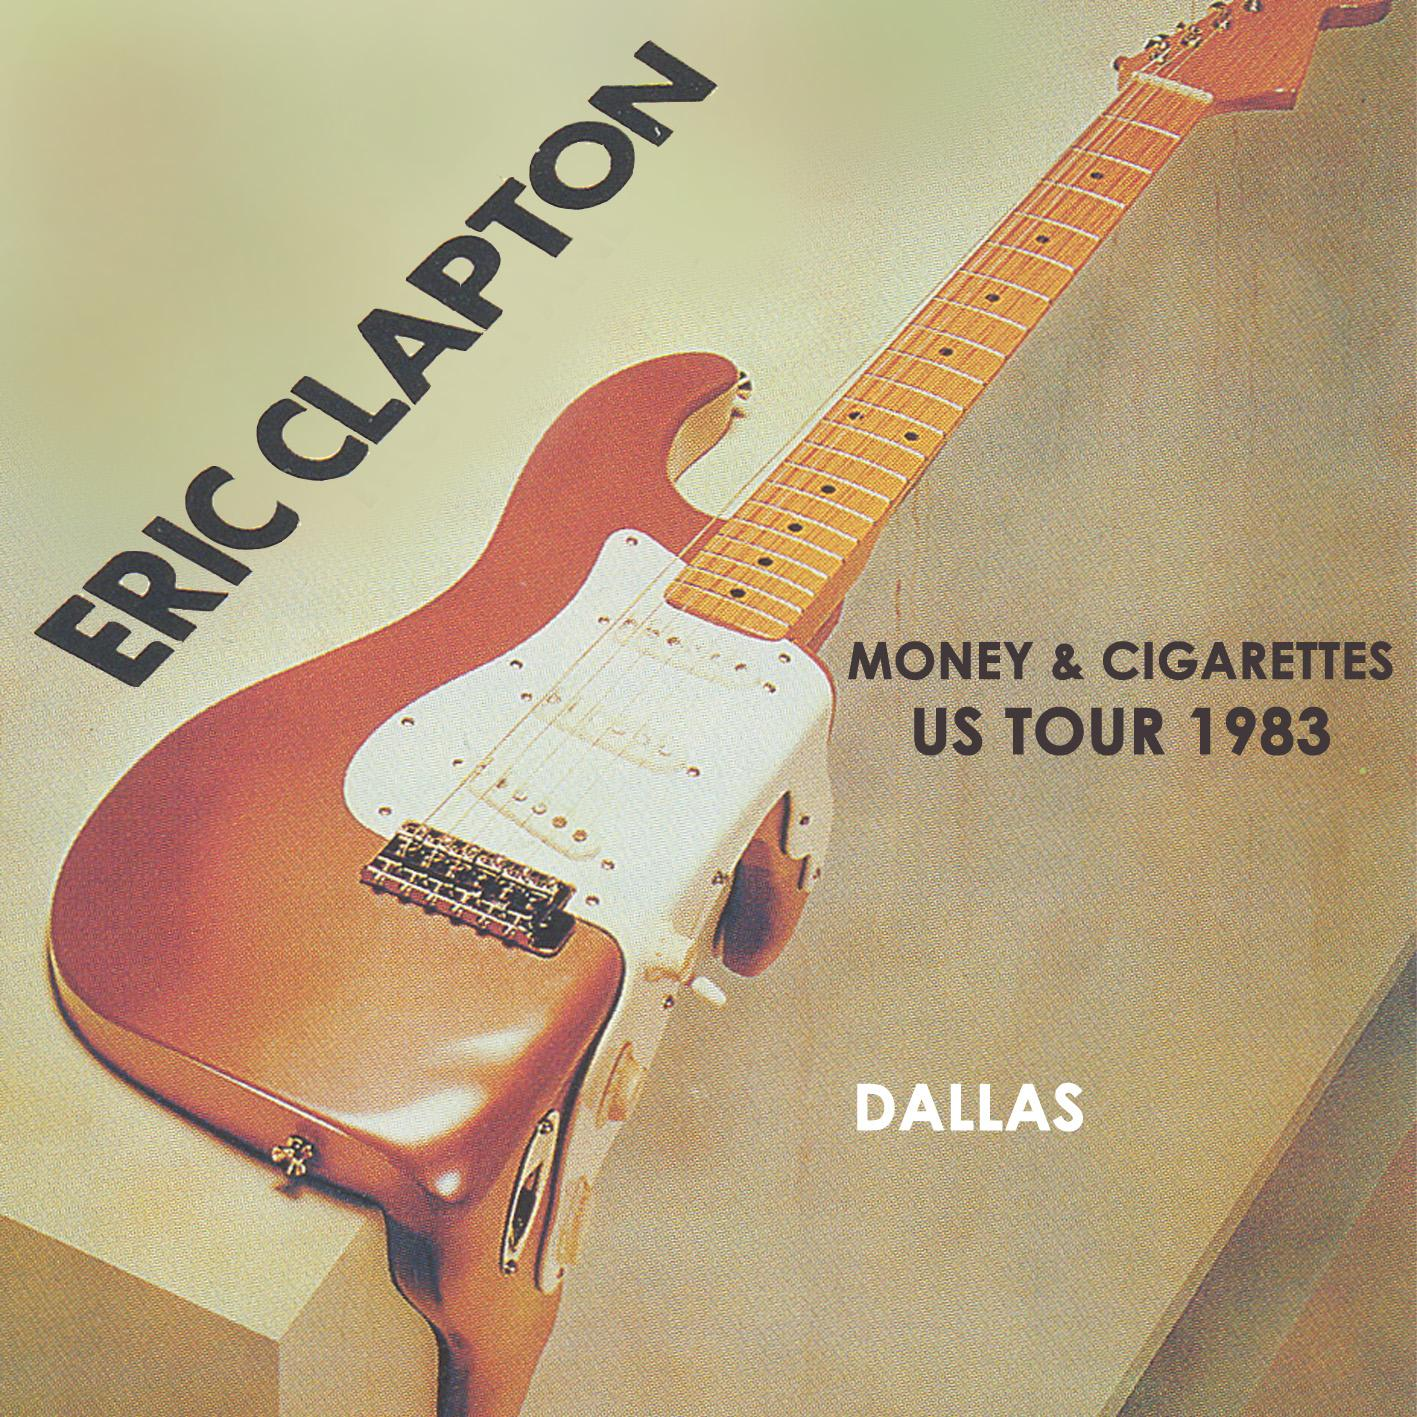 eric clapton reunion arena dallas texas february 15